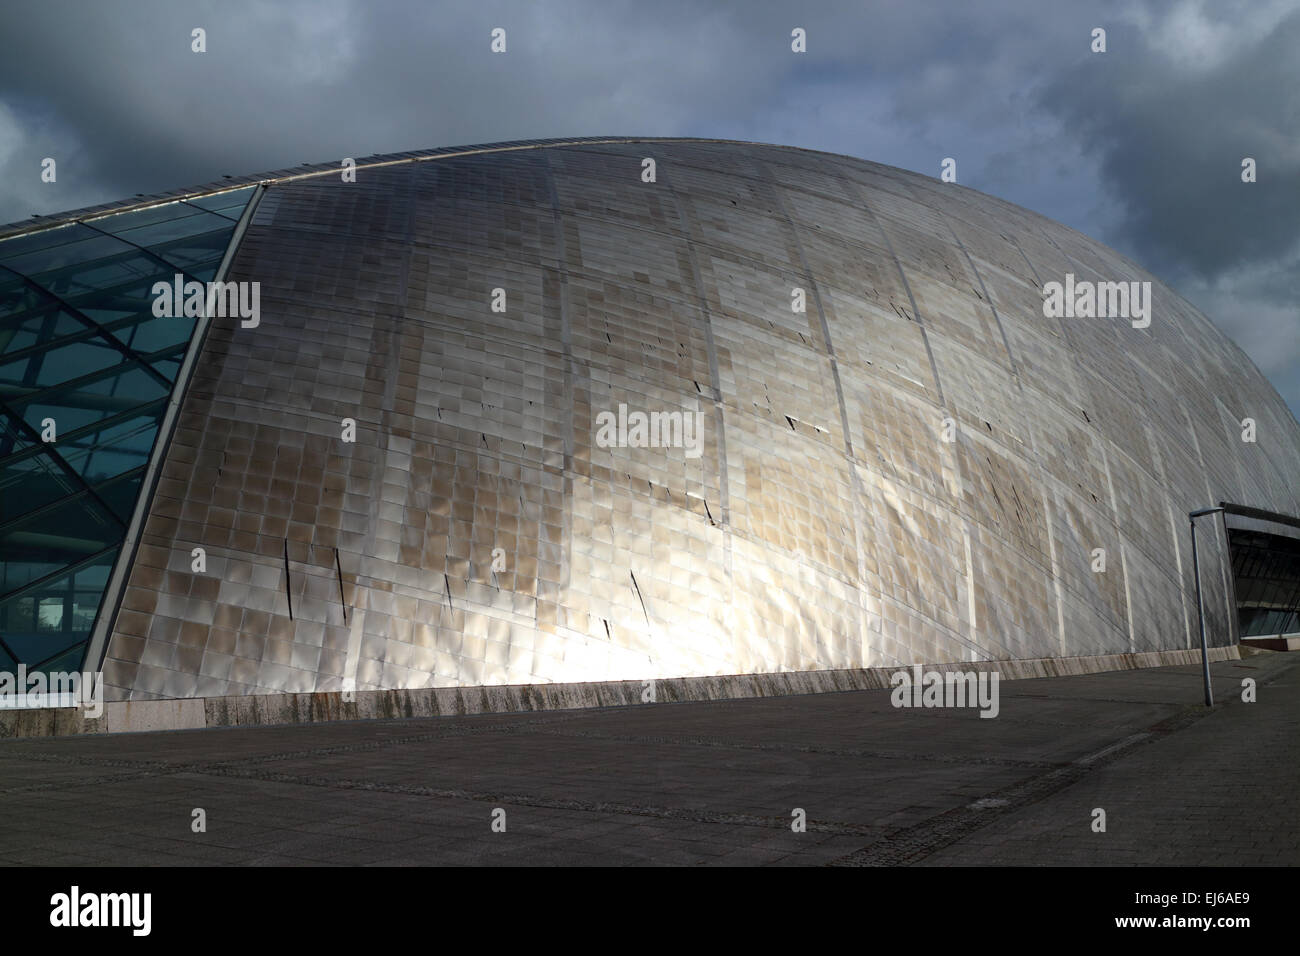 Glasgow science centre mall building pacific quay Scotland uk - Stock Image